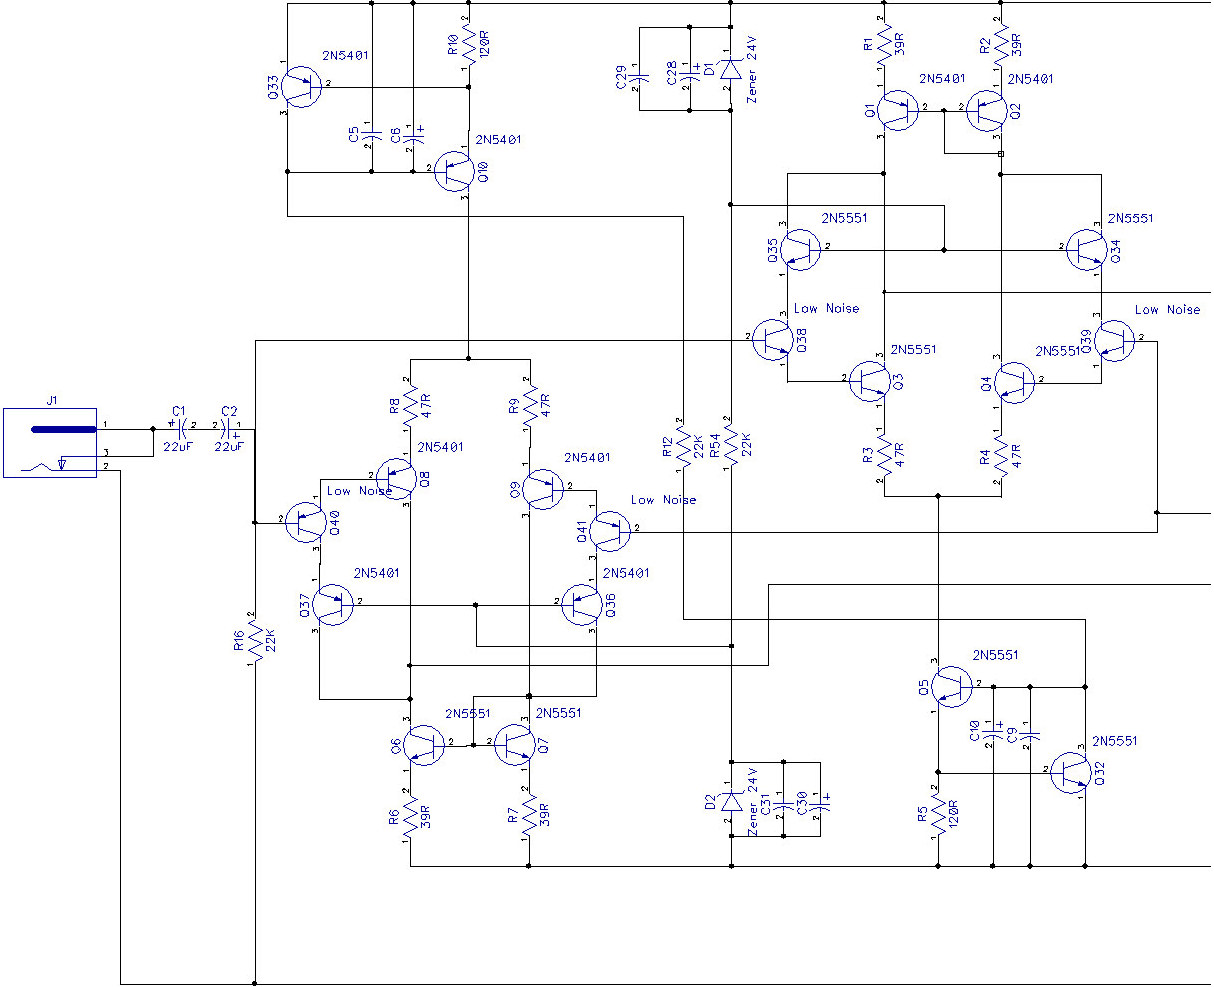 Hiend Audio Diy Hi Fi Stereo Electronics Site For Lovers Of Darlington Pair Circuit Hvlv